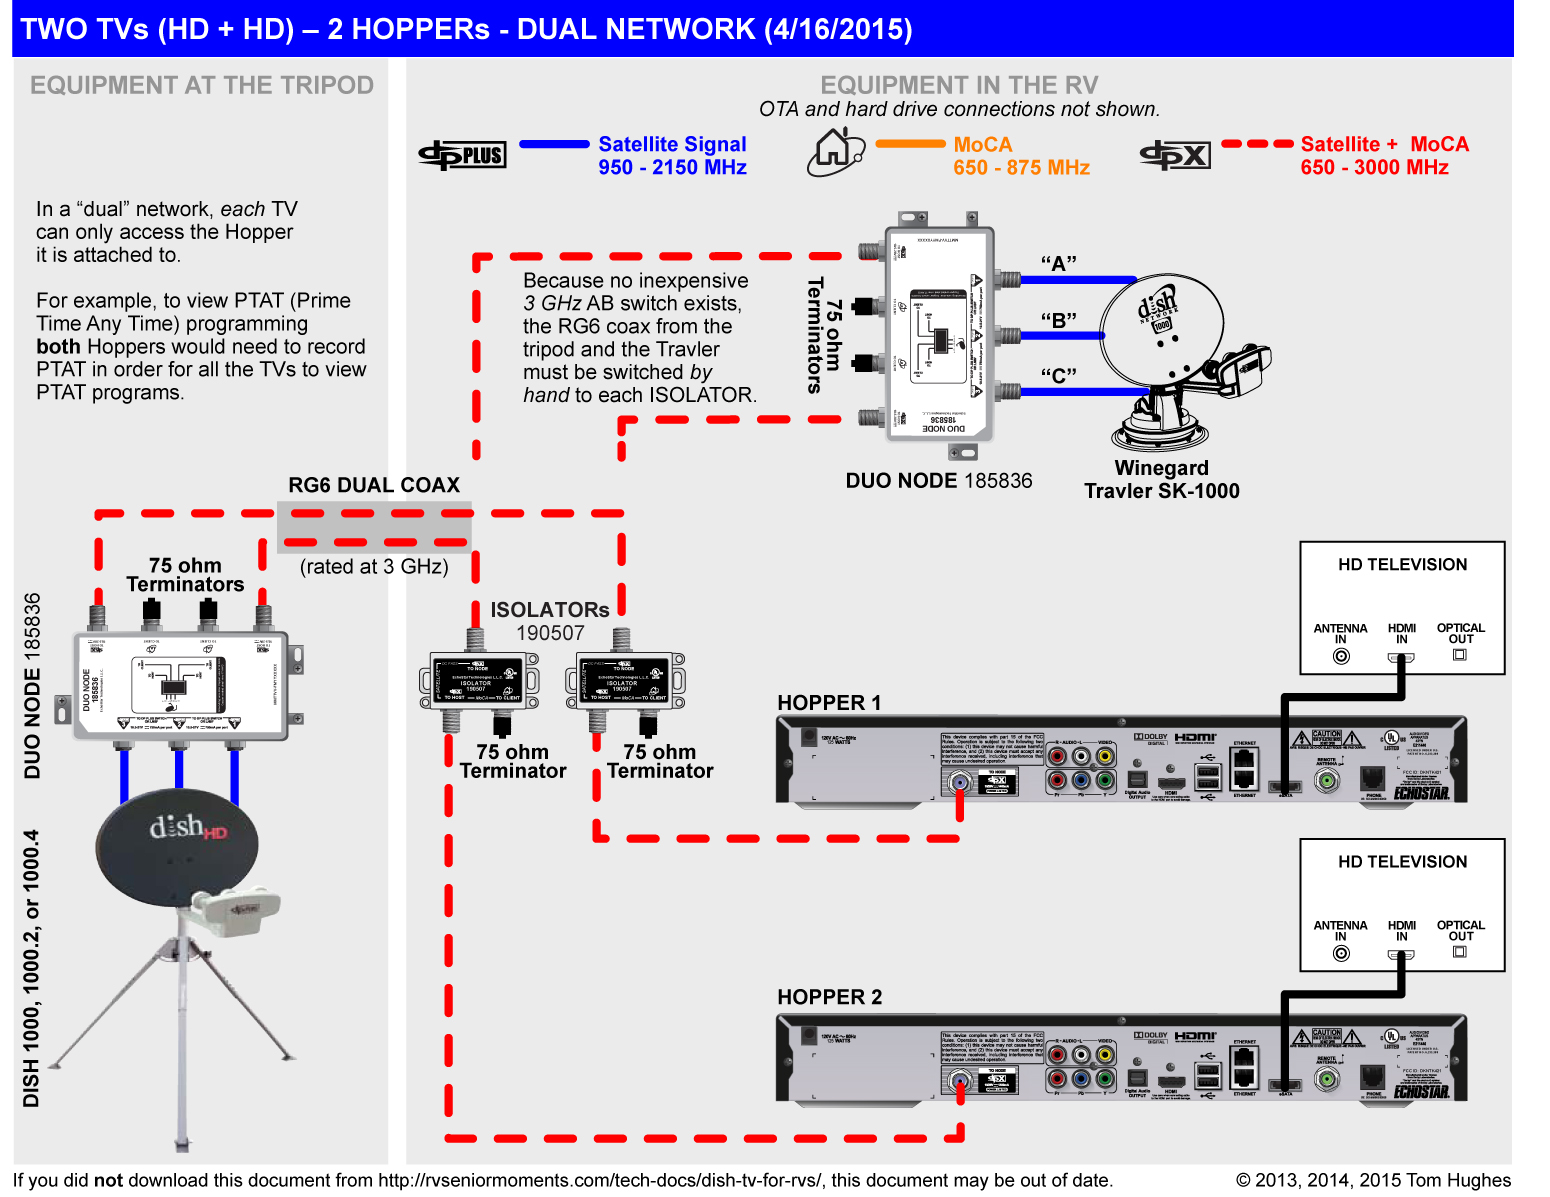 211_dish_twotvs_two_hoppers_dual_network_hdhd720dpi dish tv for rvs rvseniormoments dish network dual receiver wiring diagram at readyjetset.co